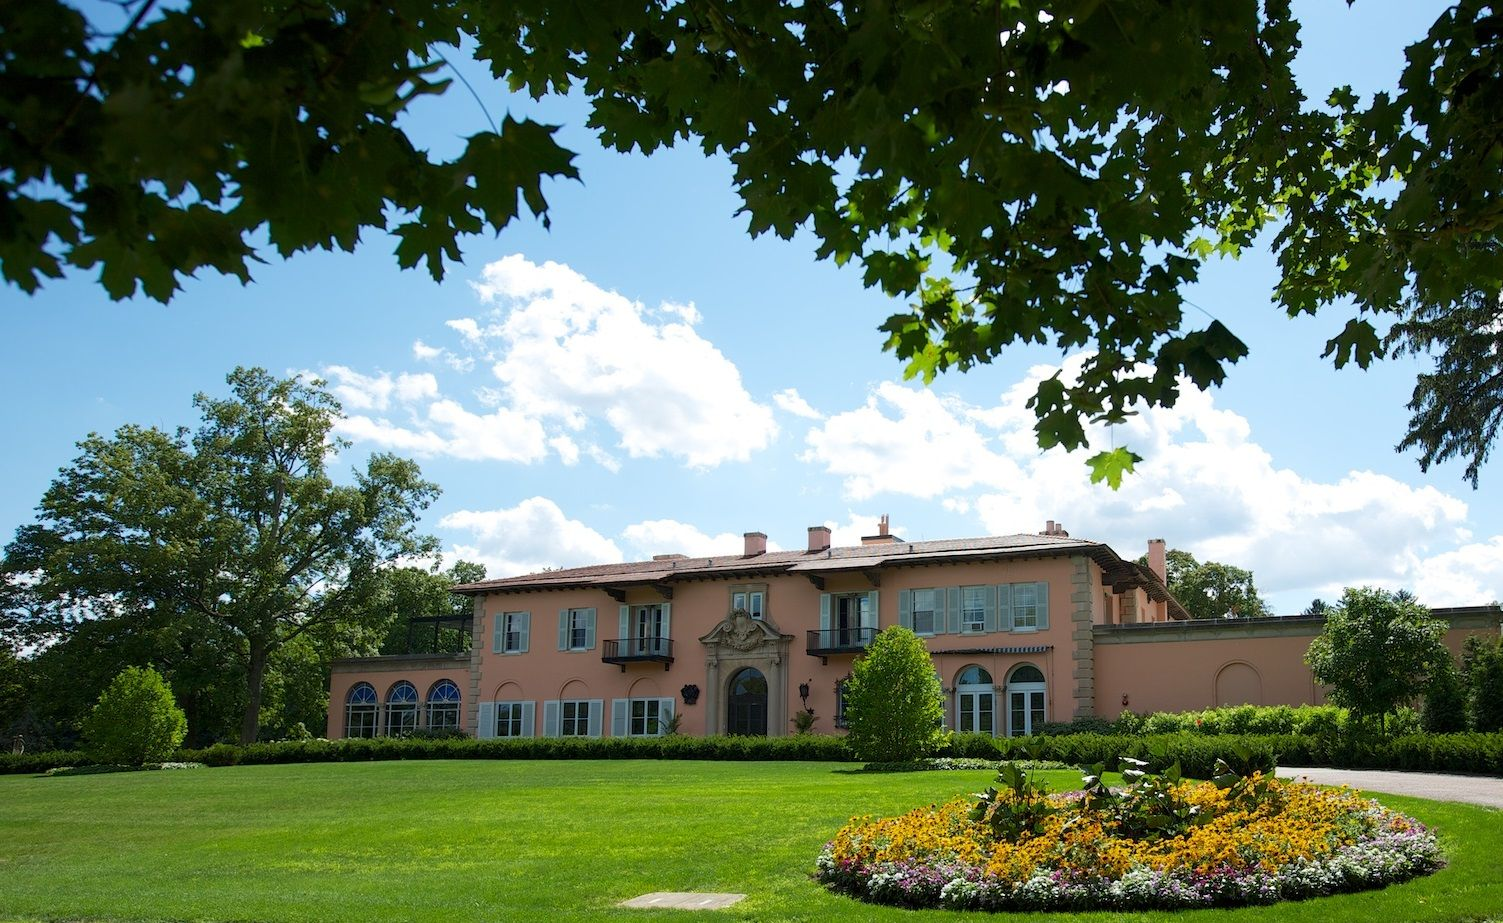 2ae311c3a73b44f3cdb8f228aaba9f47 - The Residences At The Cuneo Mansion And Gardens